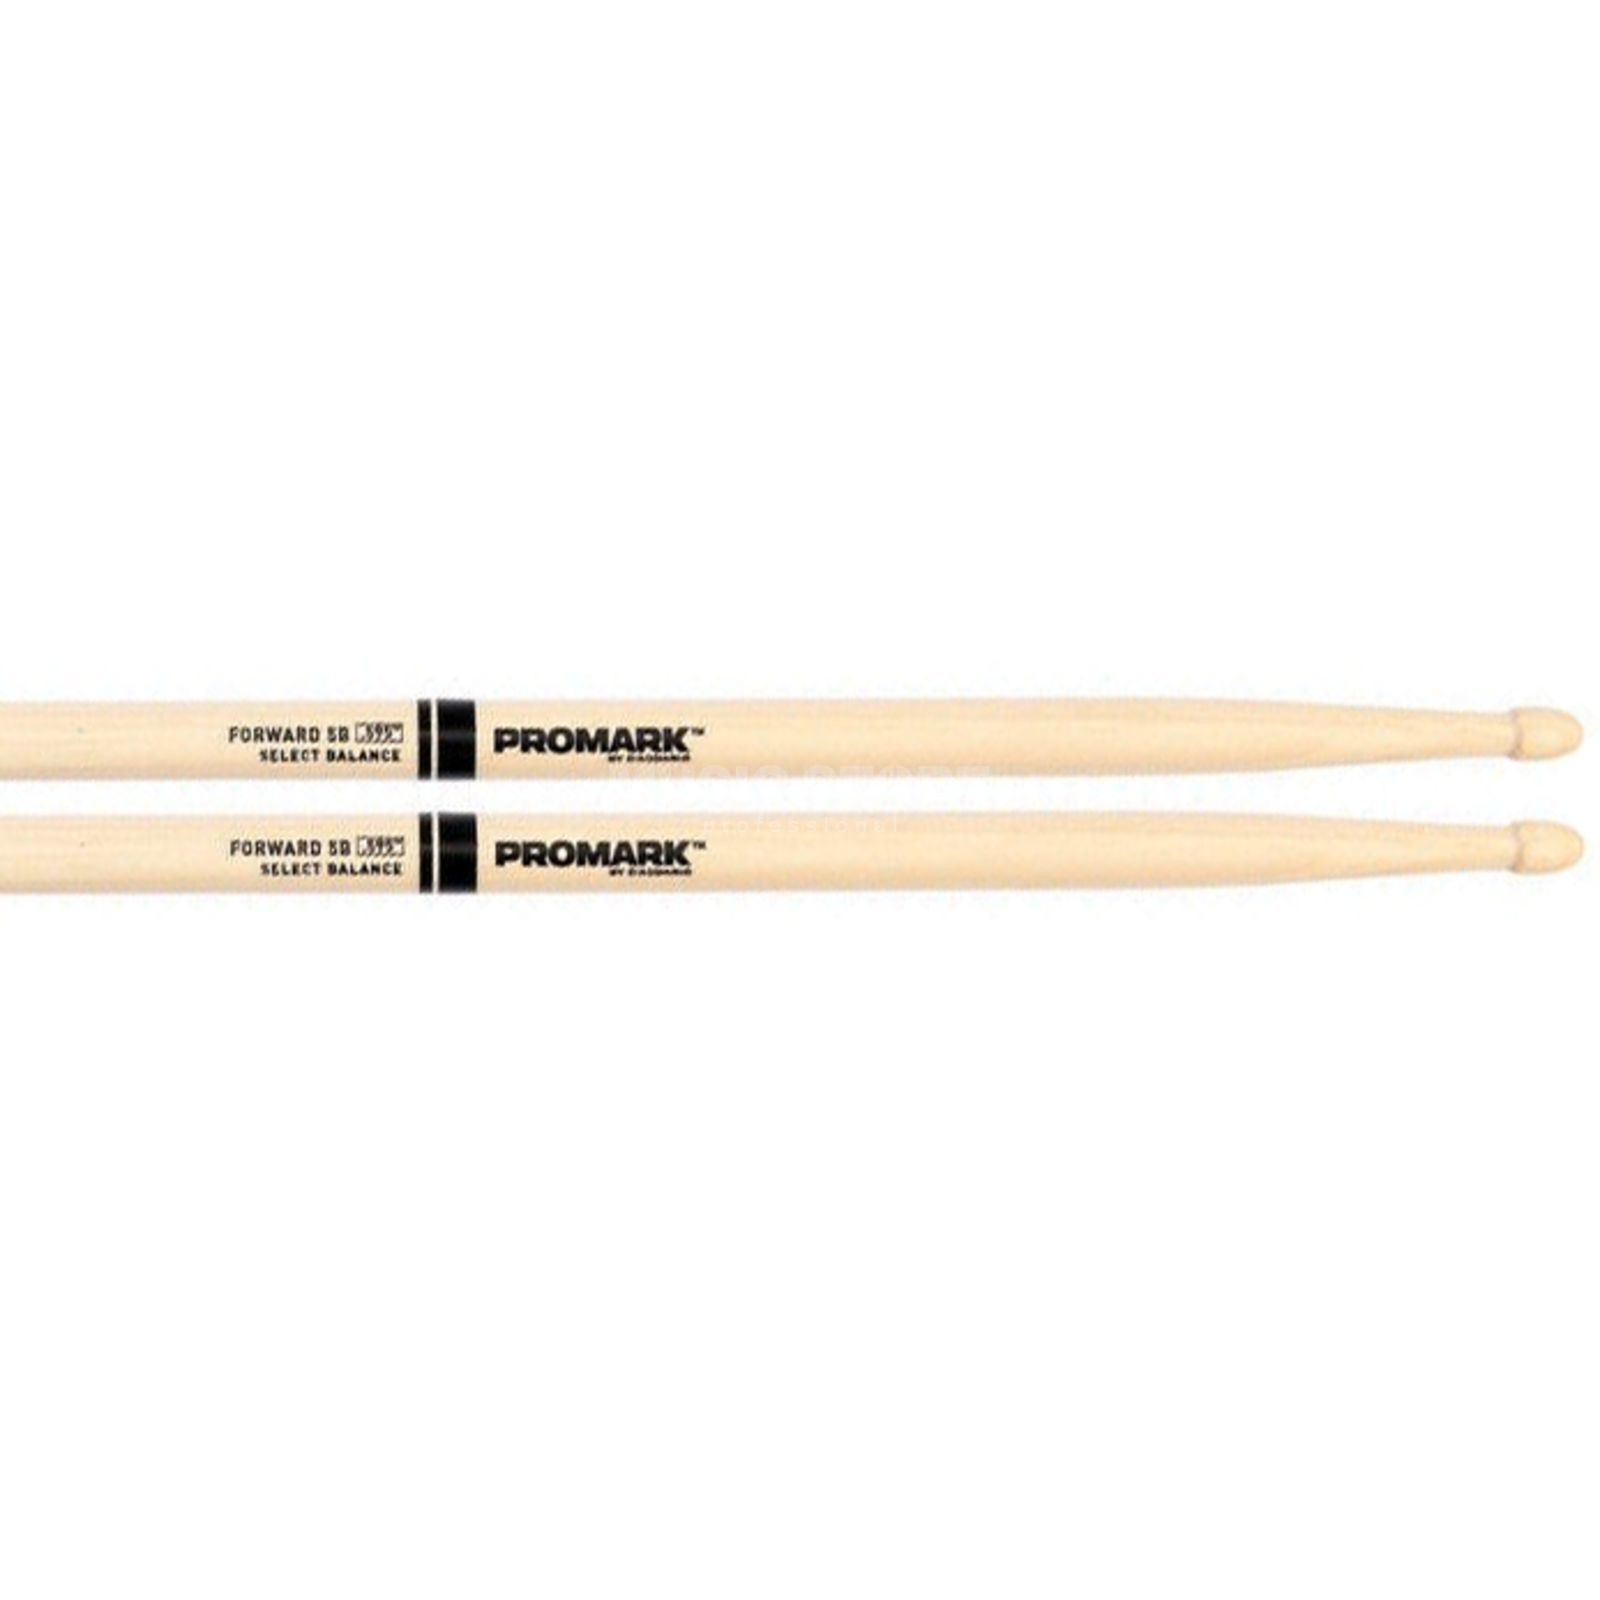 PRO-MARK Select Balance Sticks FBH595AW Forward Balance, Acorn Tip Product Image